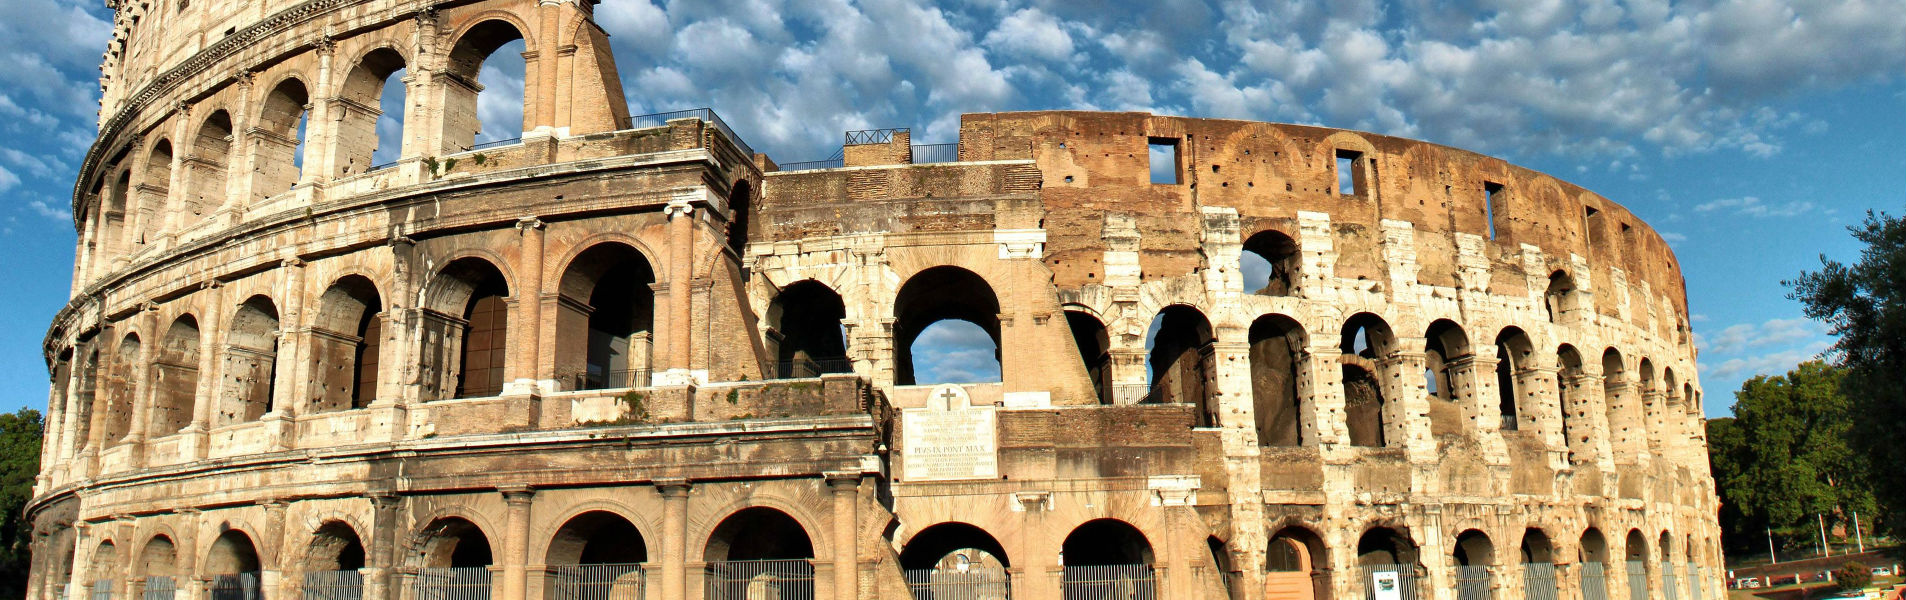 The Colosseum, 2,000 years of history in the heart of Rome